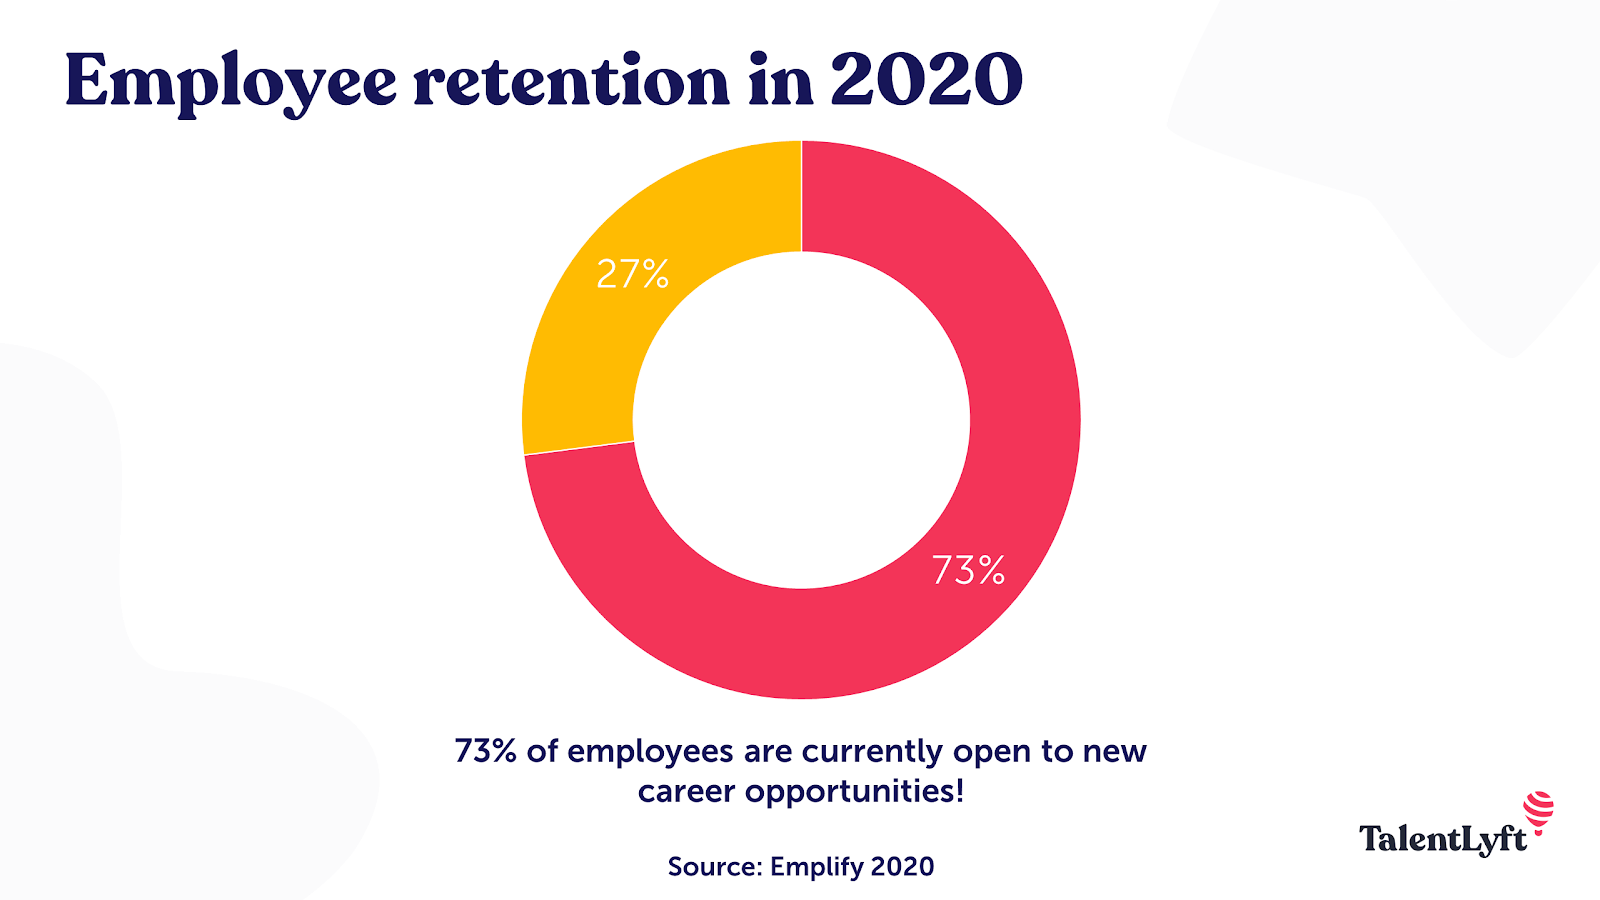 Employee retention statistic 2020